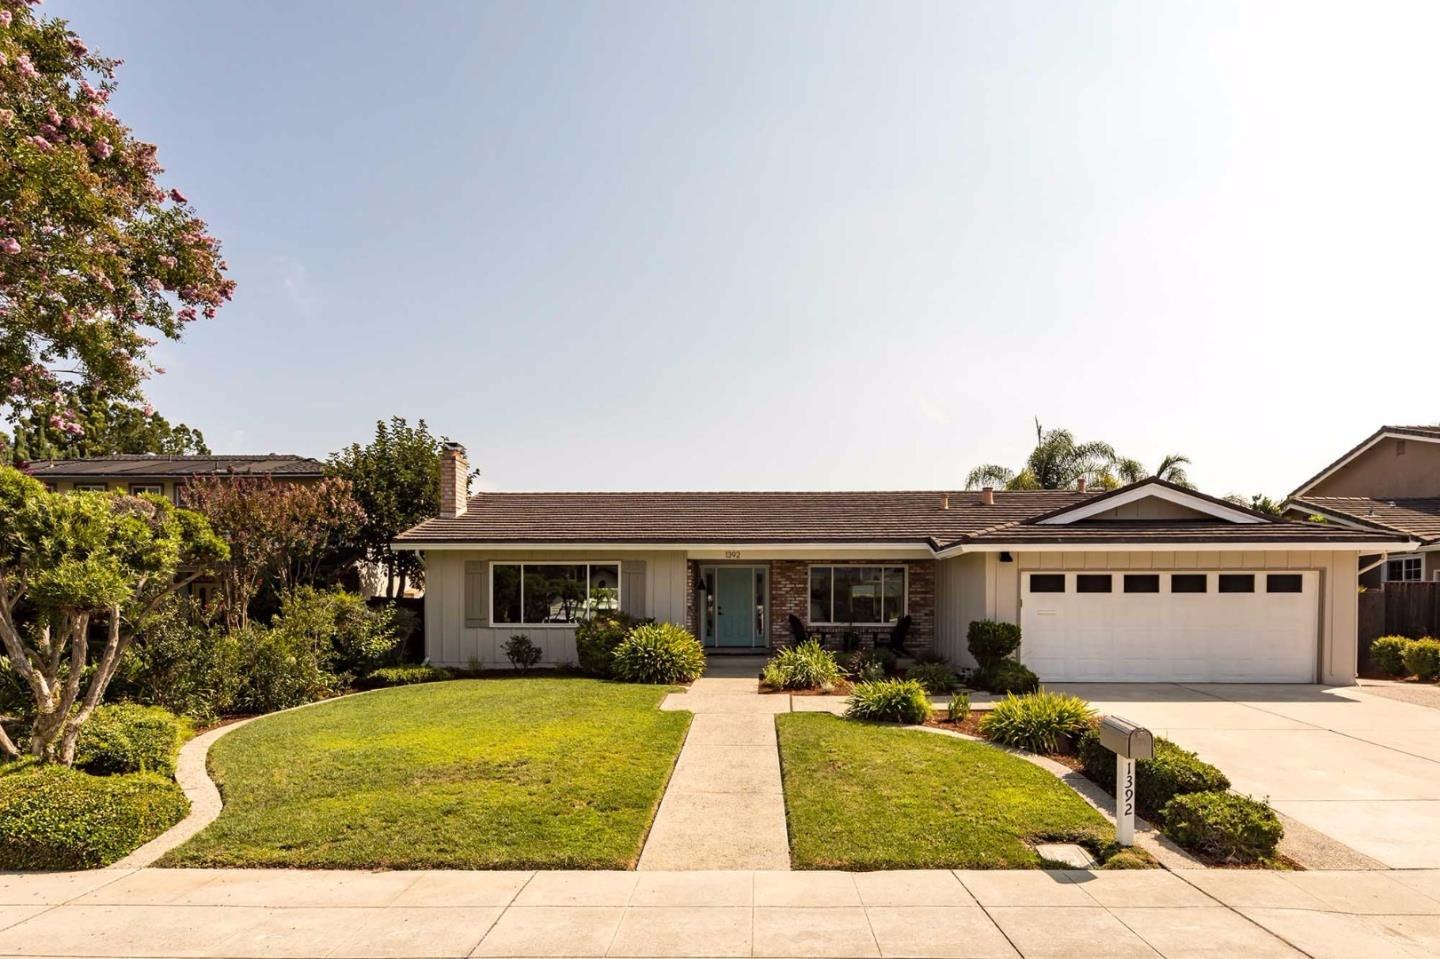 Single Family Home for Sale at 1392 Bedford Avenue 1392 Bedford Avenue Sunnyvale, California 94087 United States